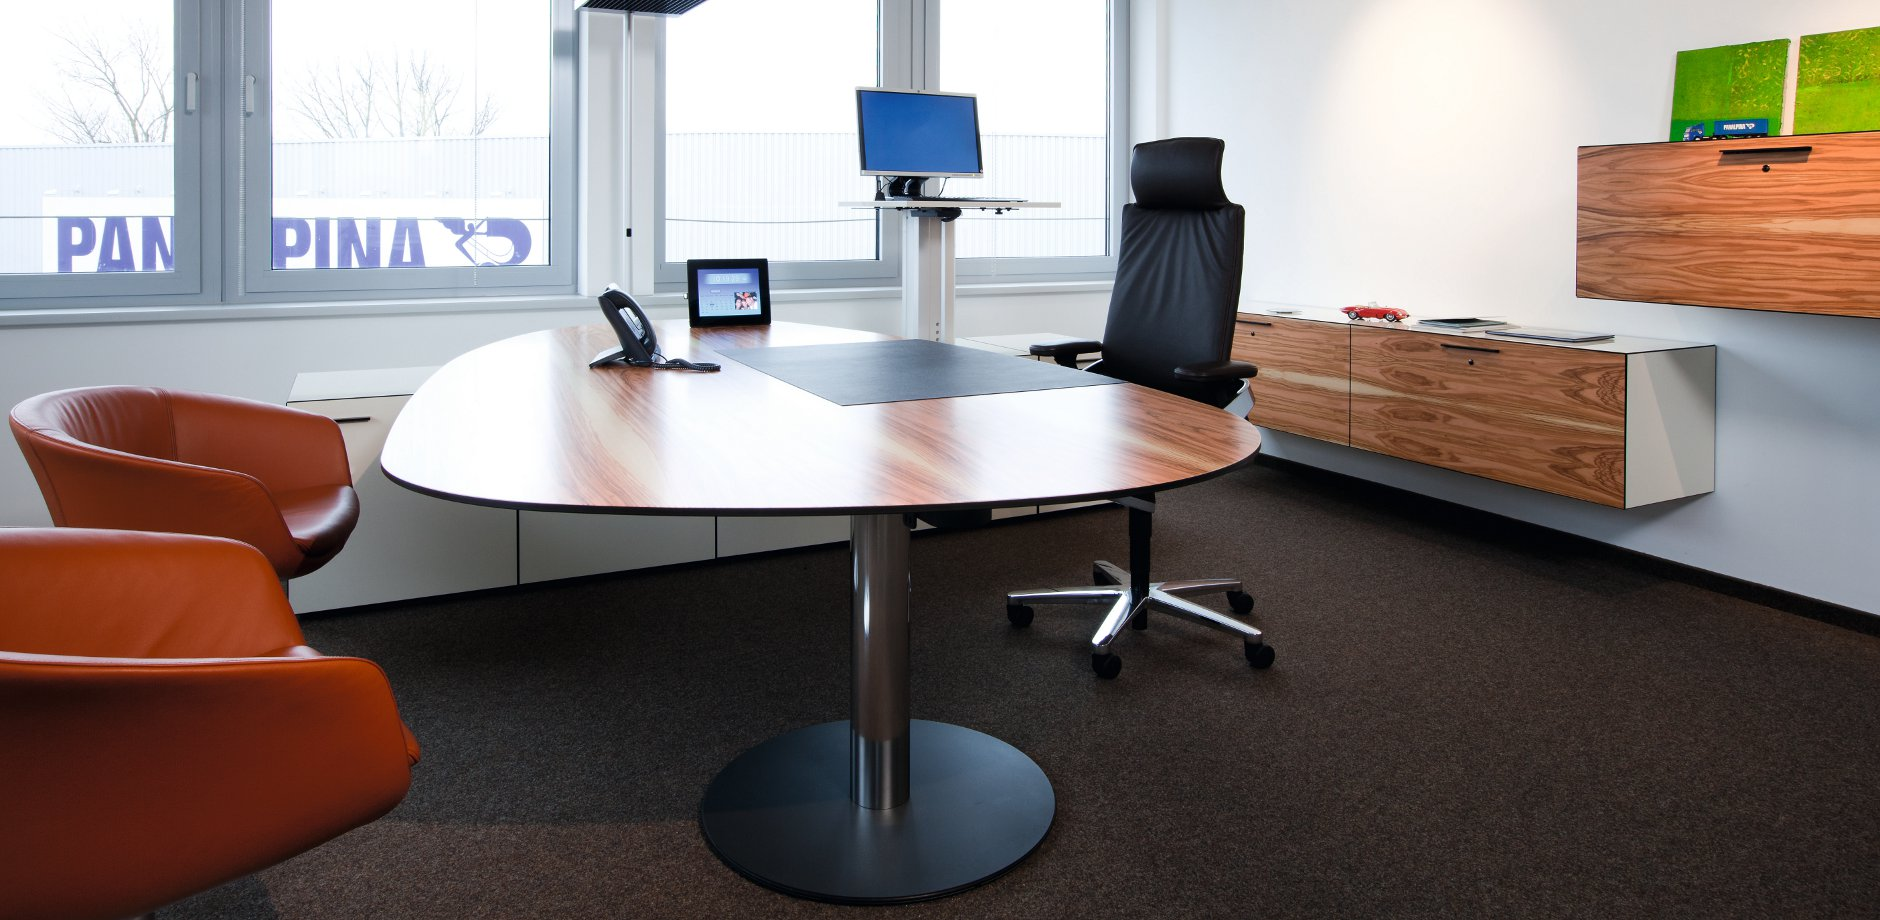 Panalpina Welttransport GmbH, ON office chair by Wilkhahn